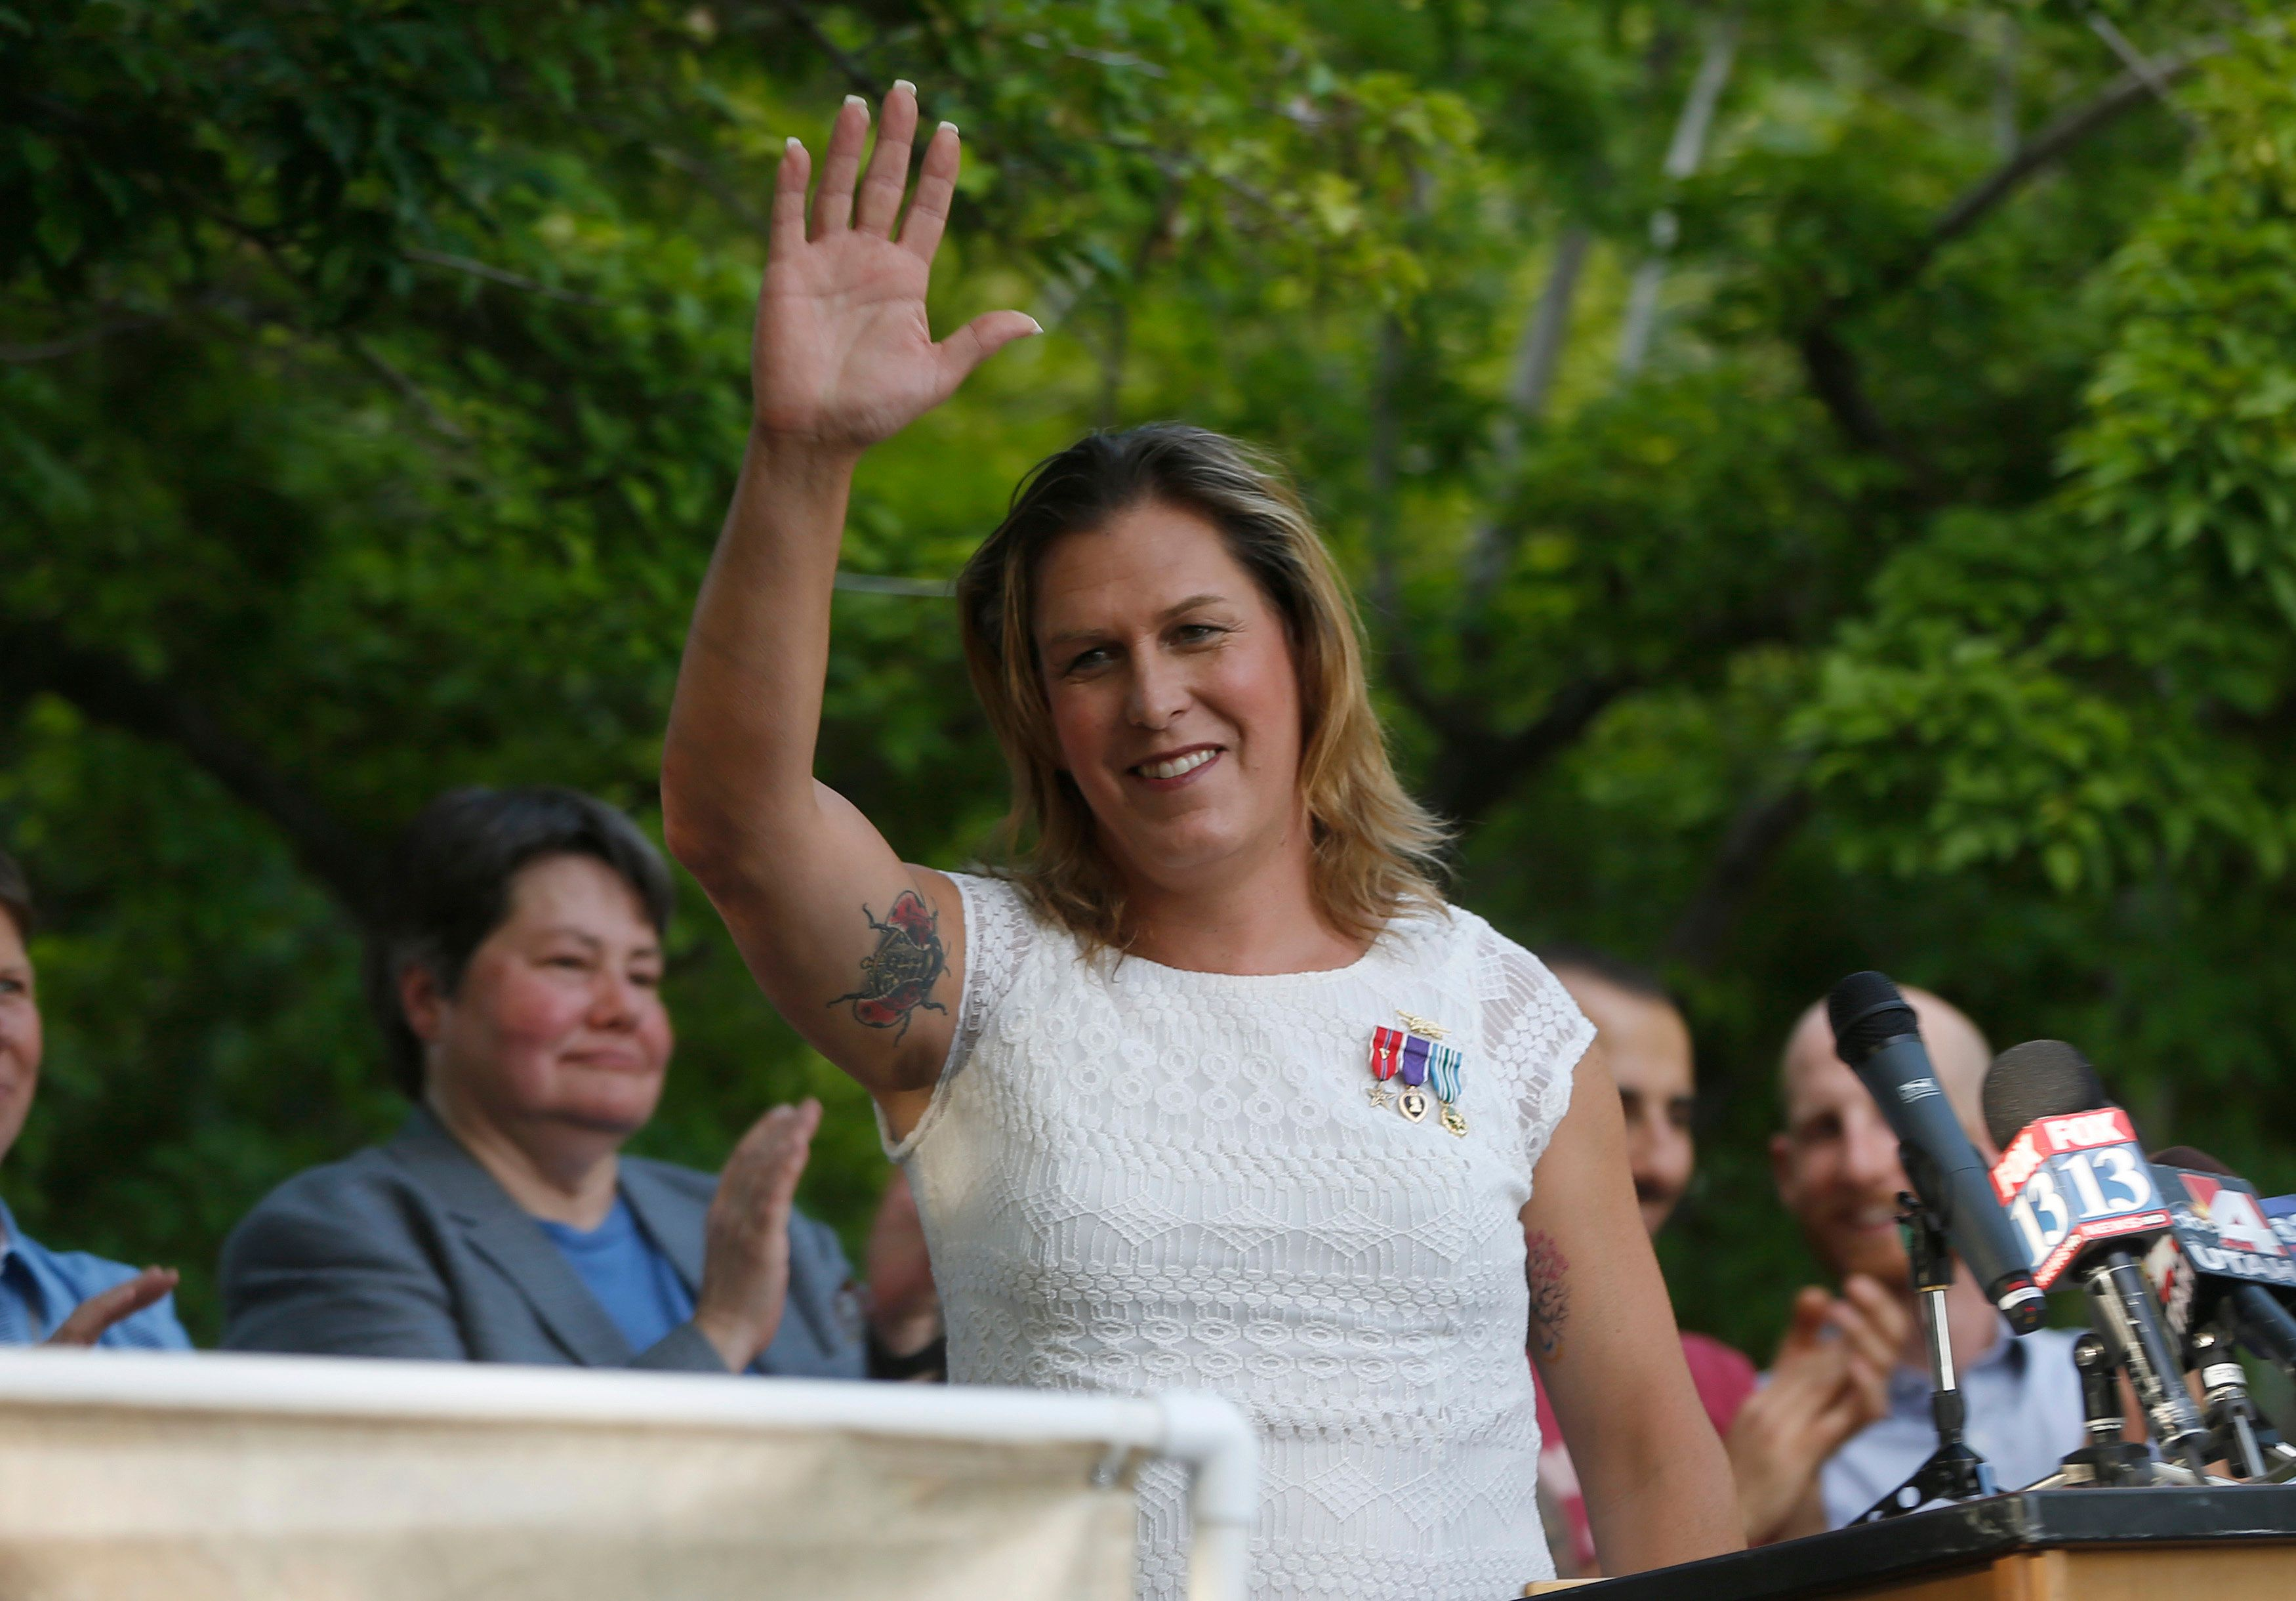 Kristin Beck, a former U.S. Navy SEAL, speaks during a same-sex marriage rally to celebrate the 10th Circuit Court of Appeals decision in Salt Lake City, Utah, June 25, 2014. The U.S. appeals court ruled on Wednesday that conservative Utah may not ban gay couples from marrying, a decision that capped a day of victories for same-sex nuptials and nudges the issue closer to the U.S. Supreme Court. REUTERS/Jim Urquhart (UNITED STATES - Tags: POLITICS SOCIETY MILITARY)